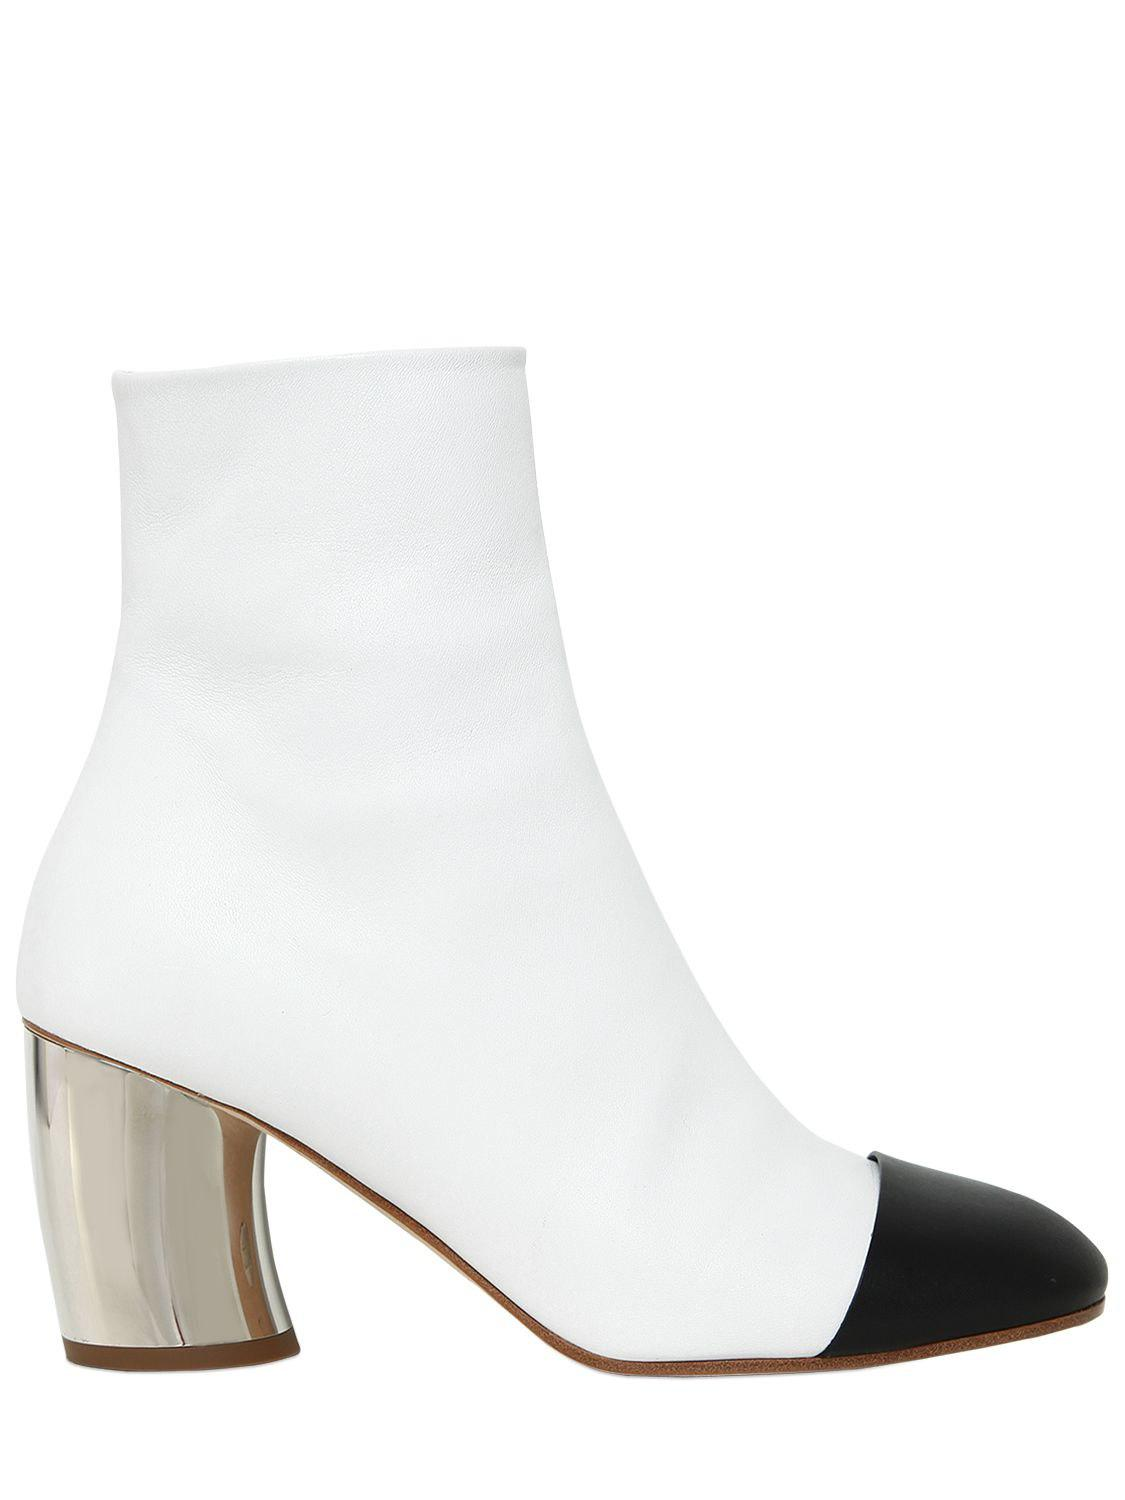 Proenza Schouler. Women's White 70mm Leather Ankle Boots